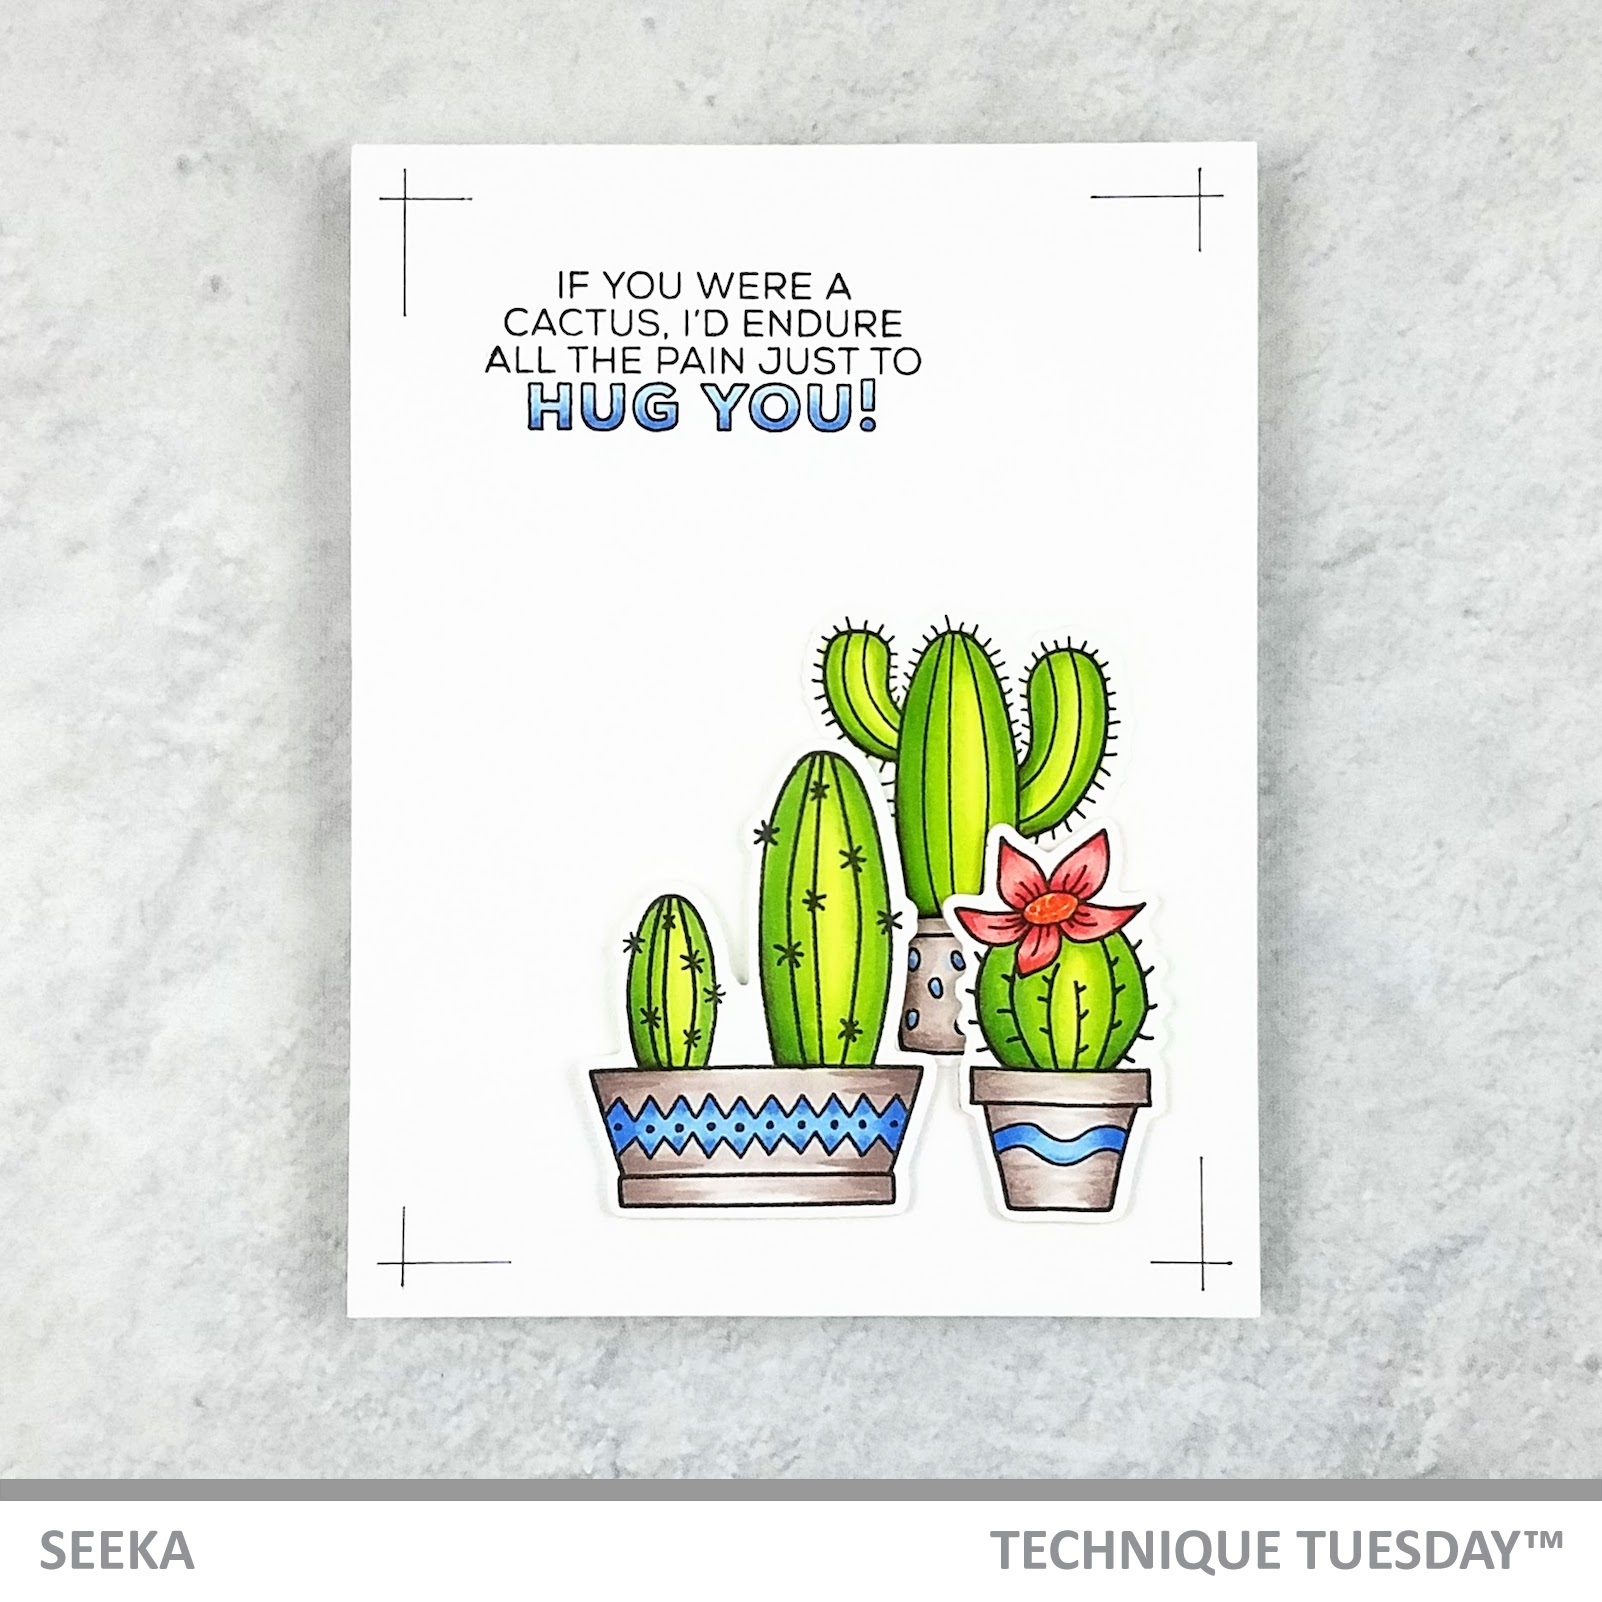 Seeka - A Little Prickly 1